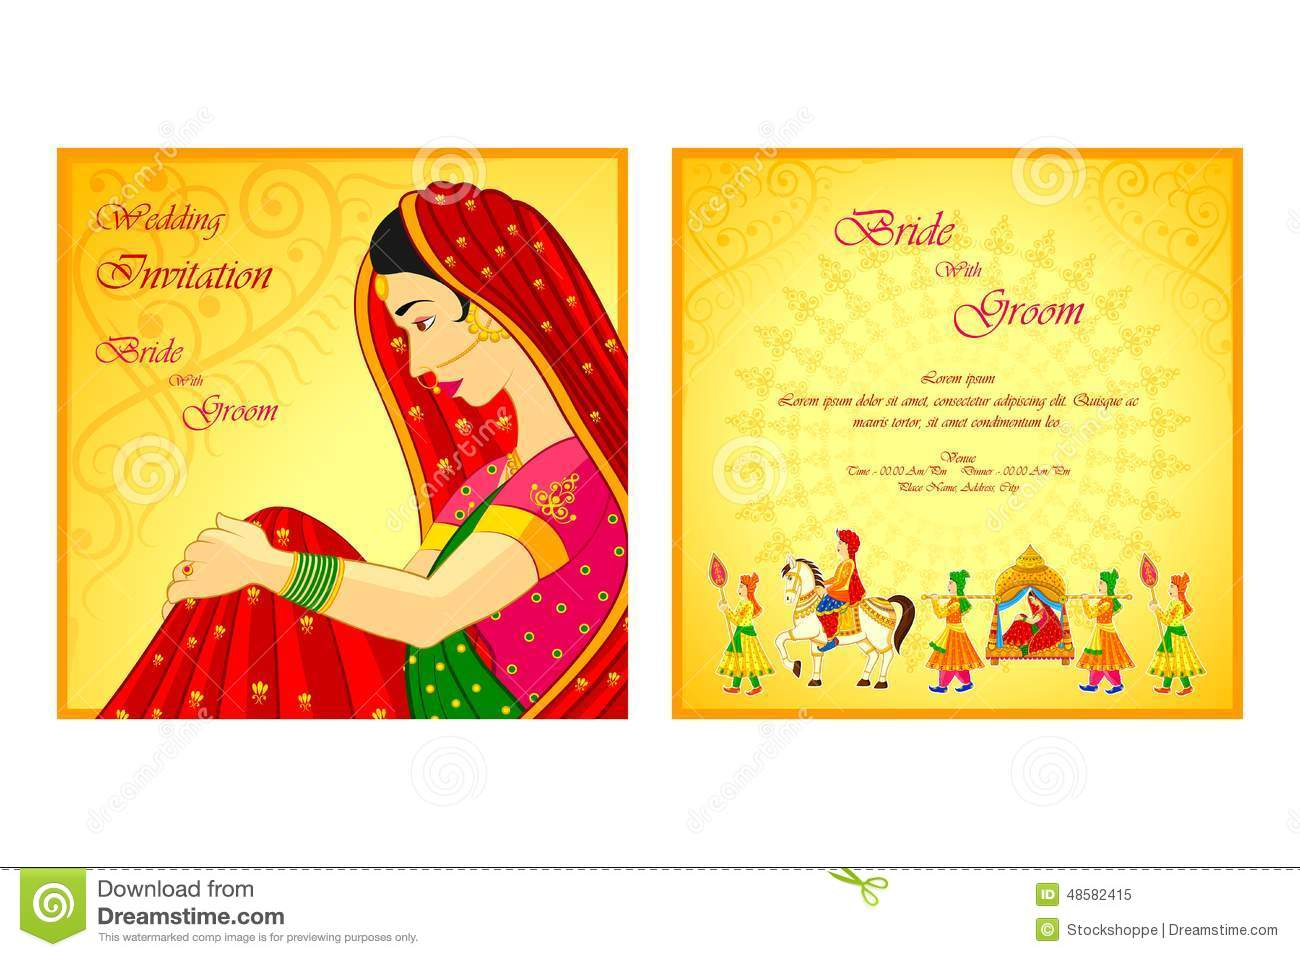 Download Indian Wedding Invitation Card Stock Vector   Illustration Of  Celebration, Illustration: 48582415. Download Comp